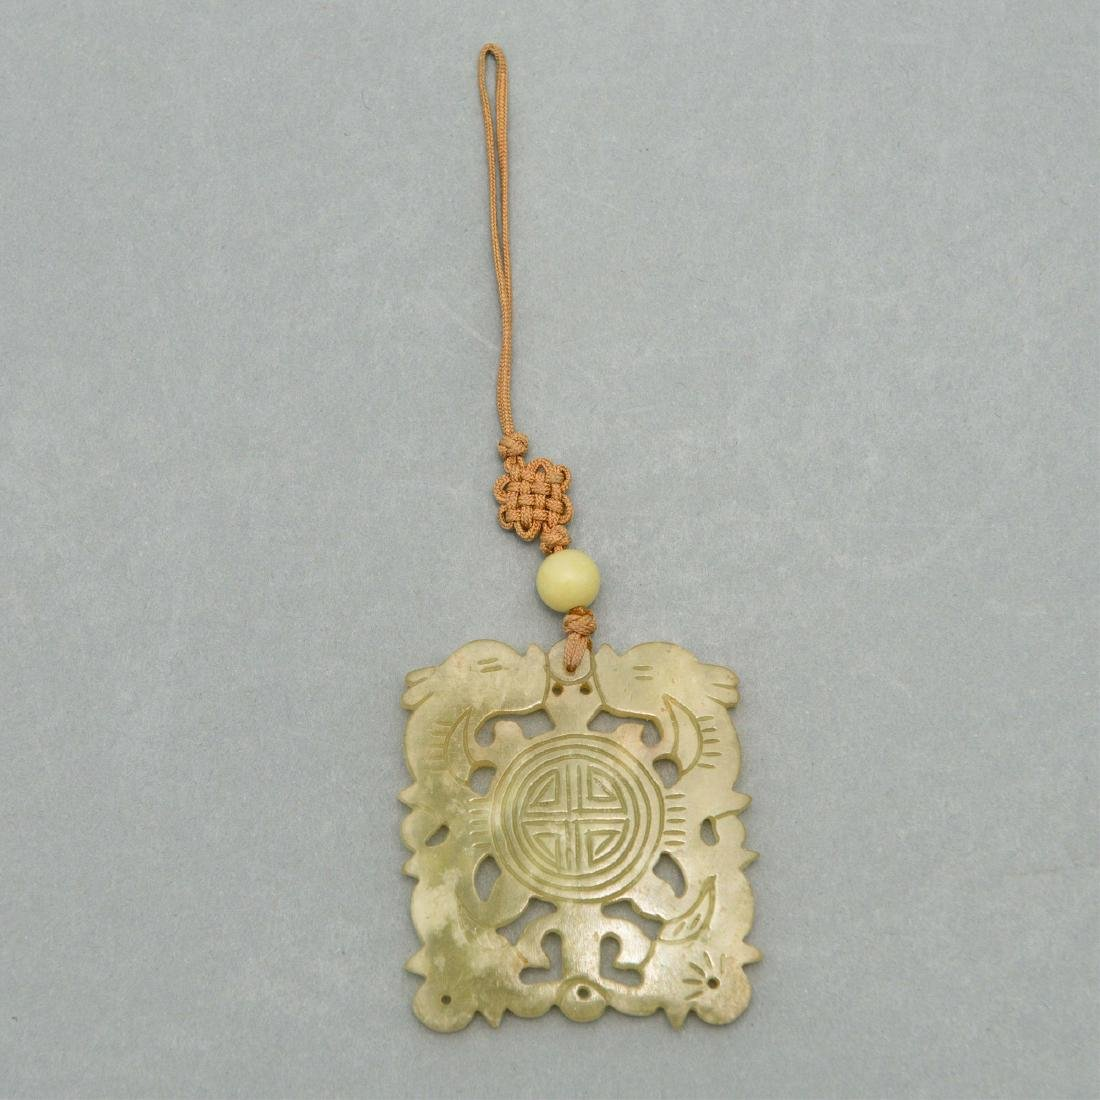 CARVED JADE NECKLACE ON DECORATIVE CORD